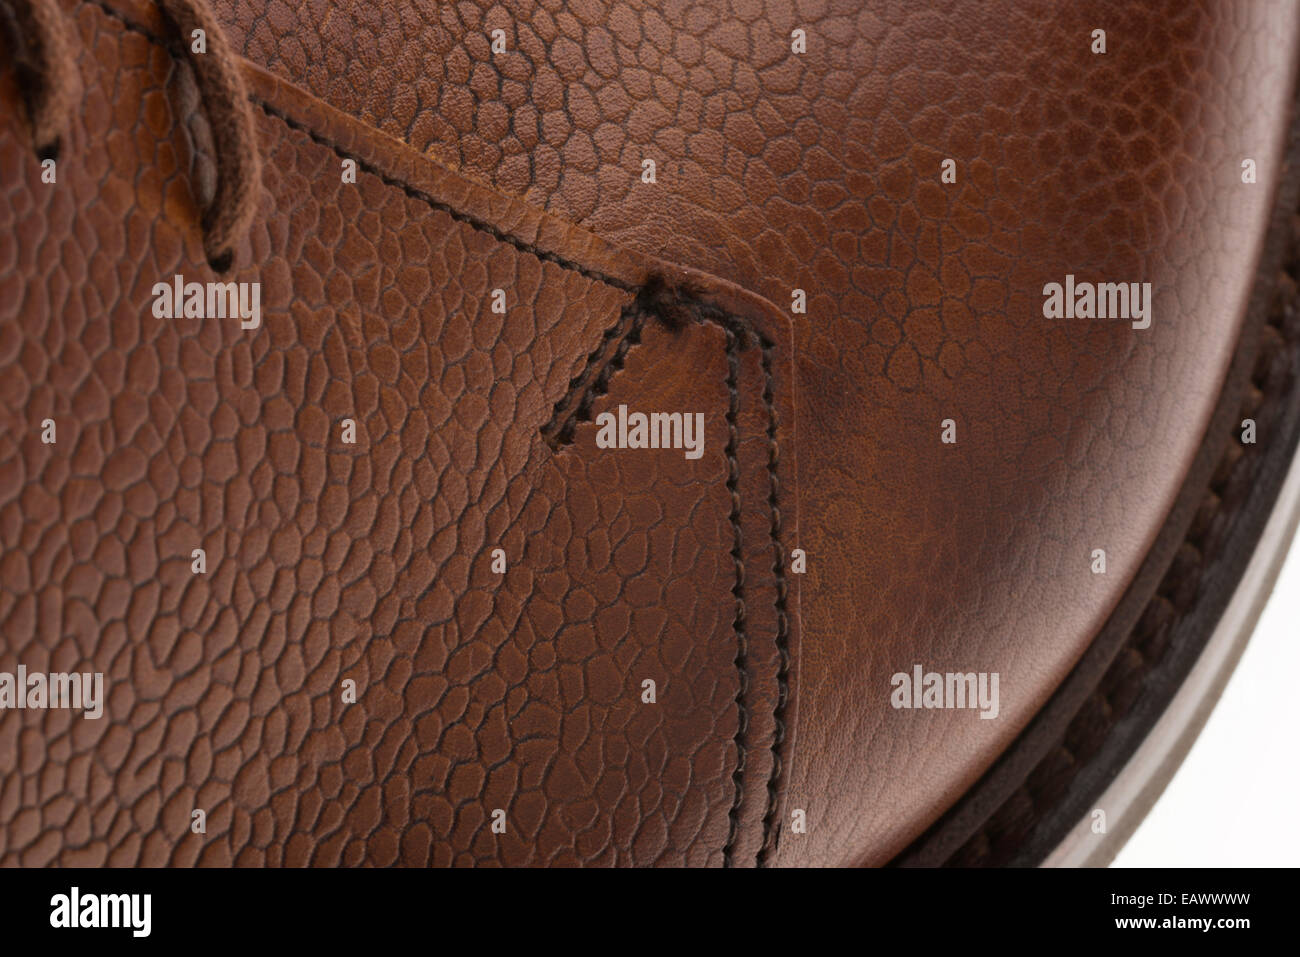 Side of rustic, textured shoe leather. Polished surface of English real brown leather, made in Northampton. - Stock Image